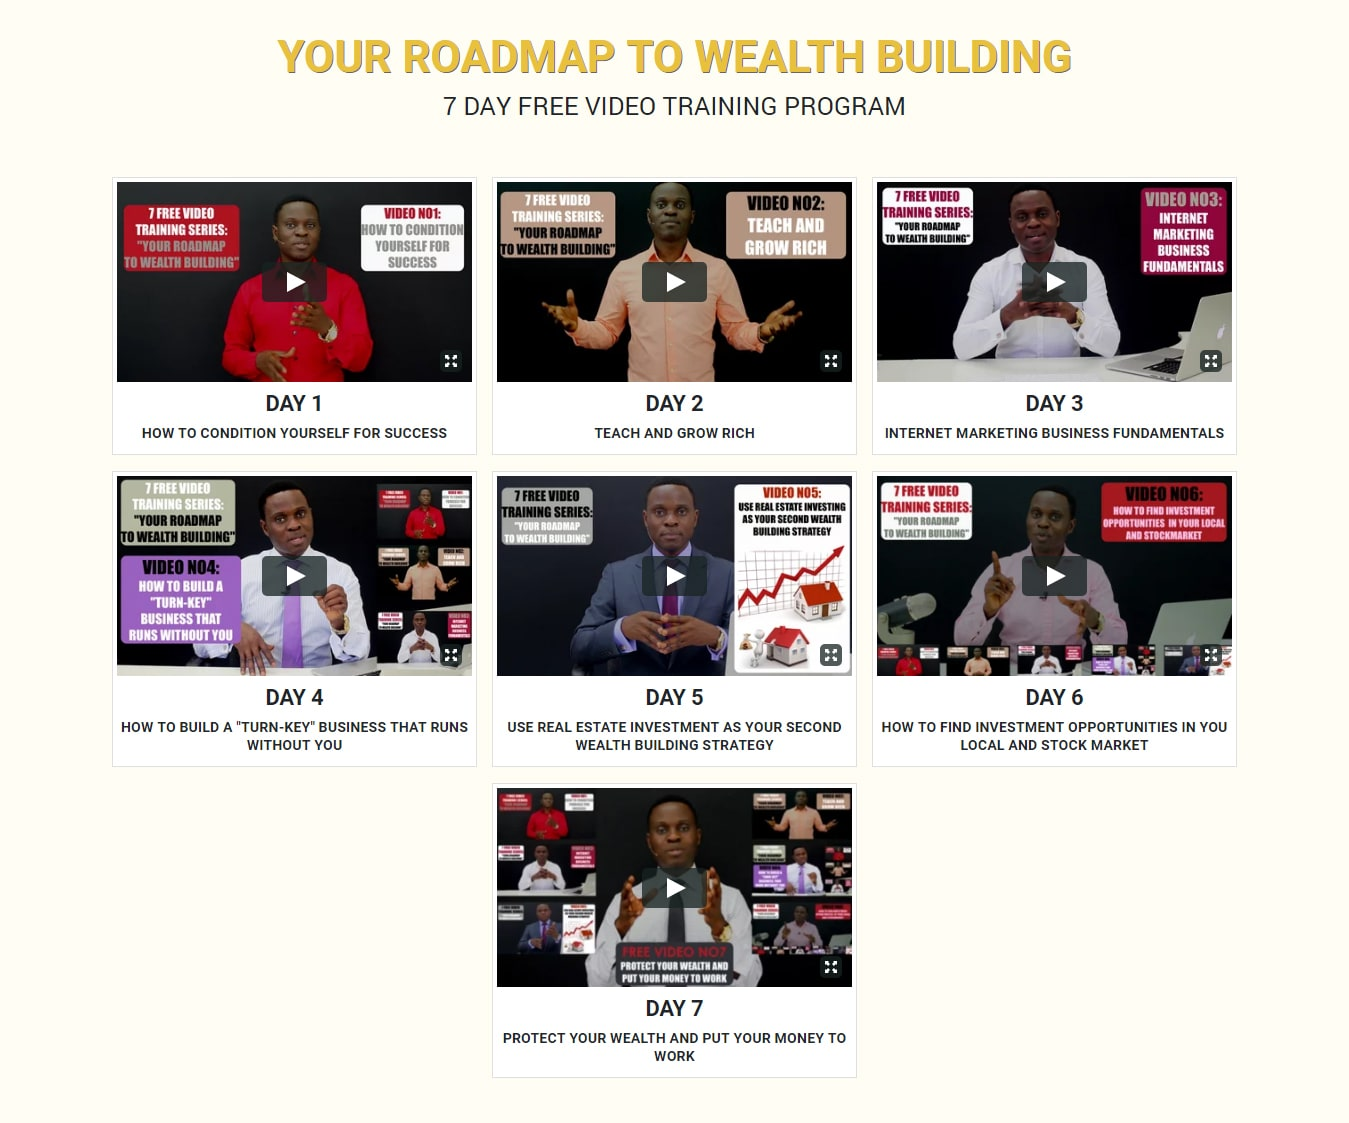 Your Roadmap to Wealth Building